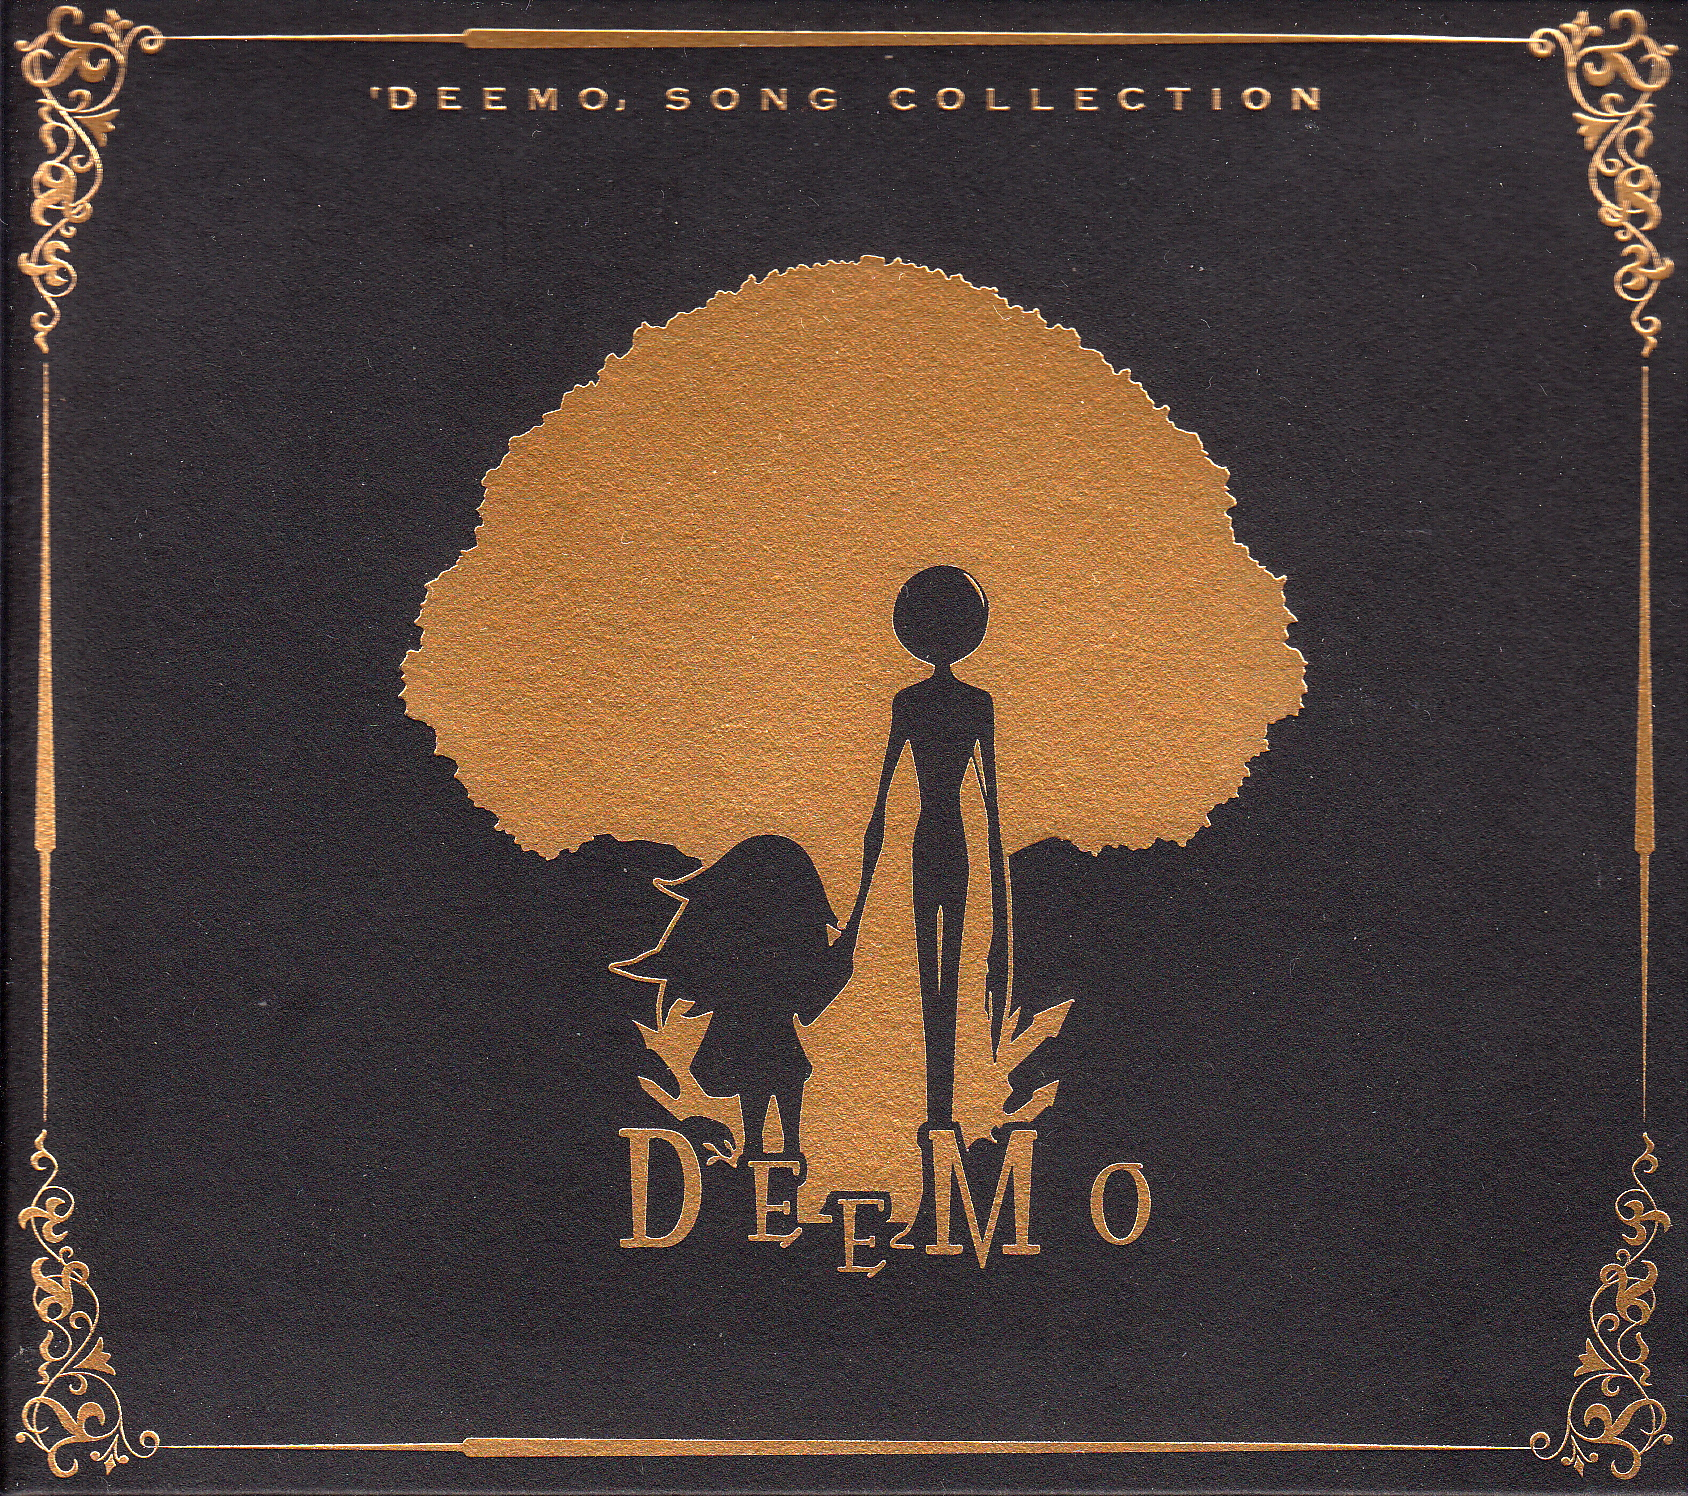 deemo song collection muzyka iz igry